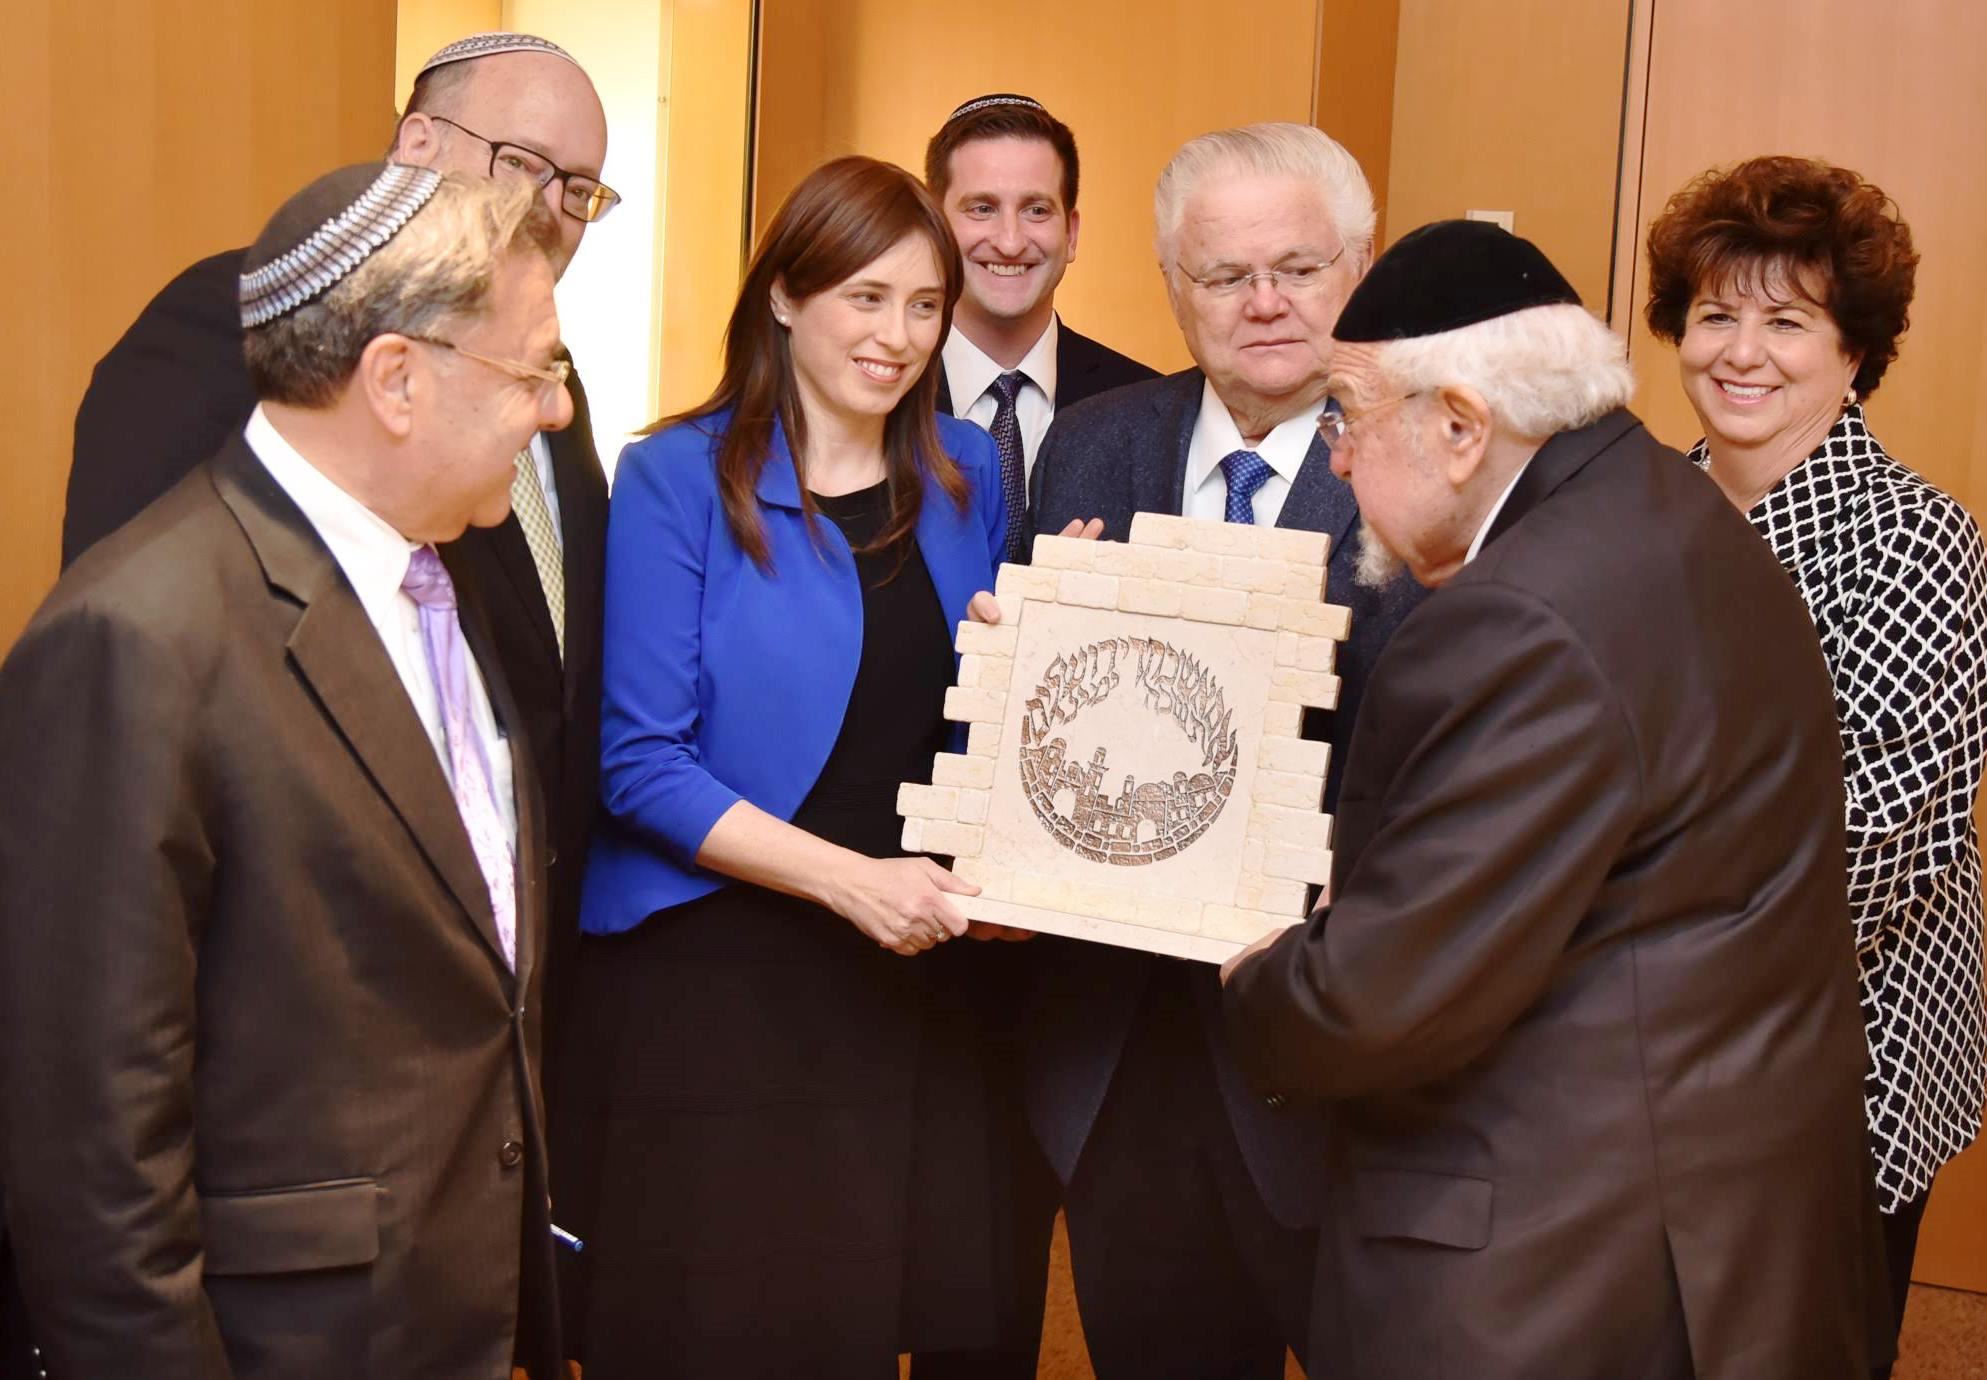 Rabbi Scheinberg receives an award